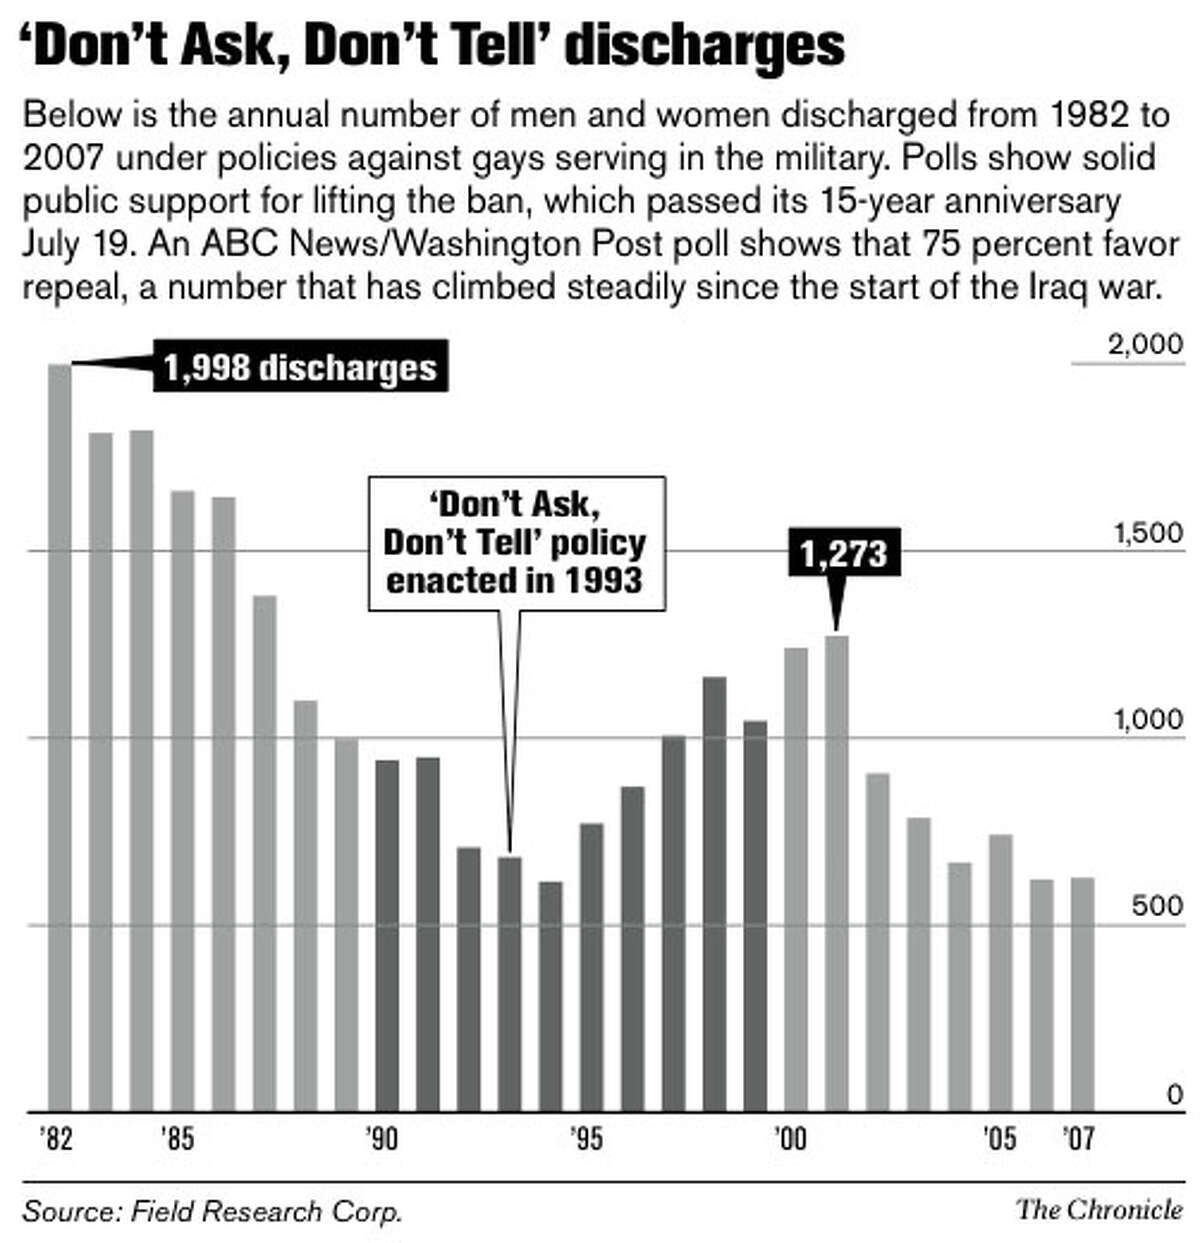 'Don't Ask, Don't Tell' discharges. Chronicle Graphic